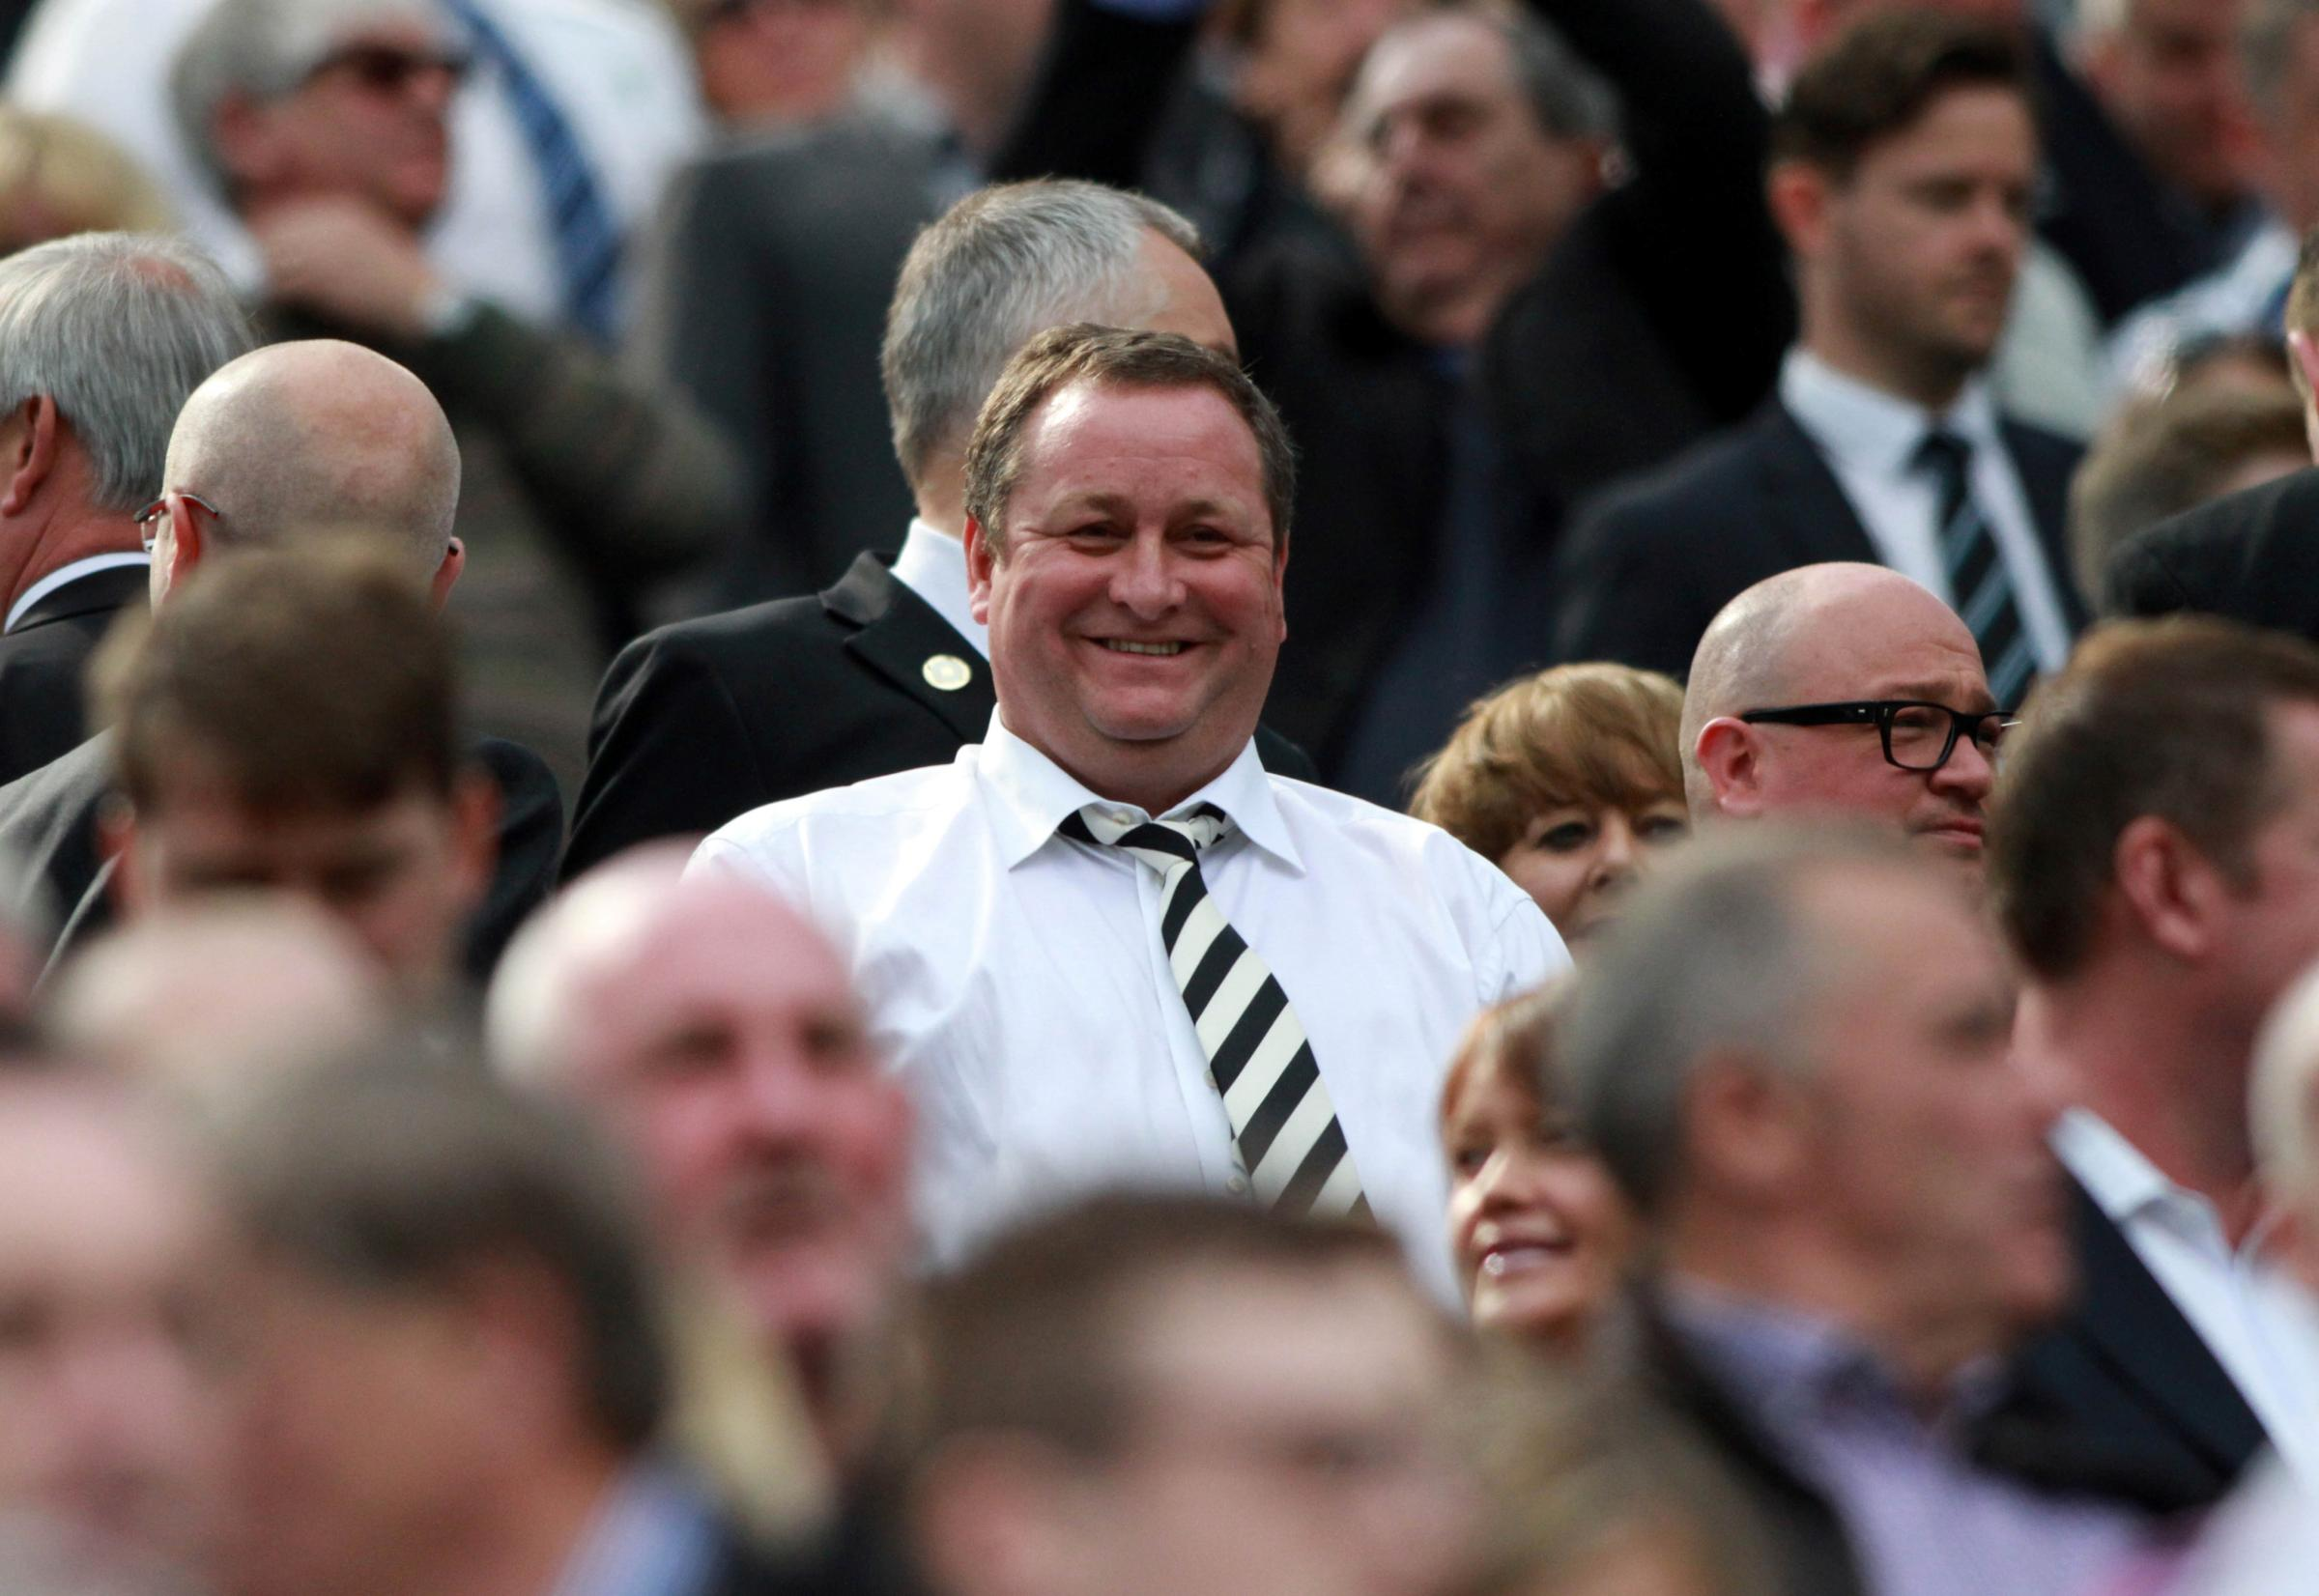 Newcastle United V West Ham FC in their final game of the 2014-15 Premier League season...Mike Ashley smiles before his team's crucial game...Picture: TOM BANKS.